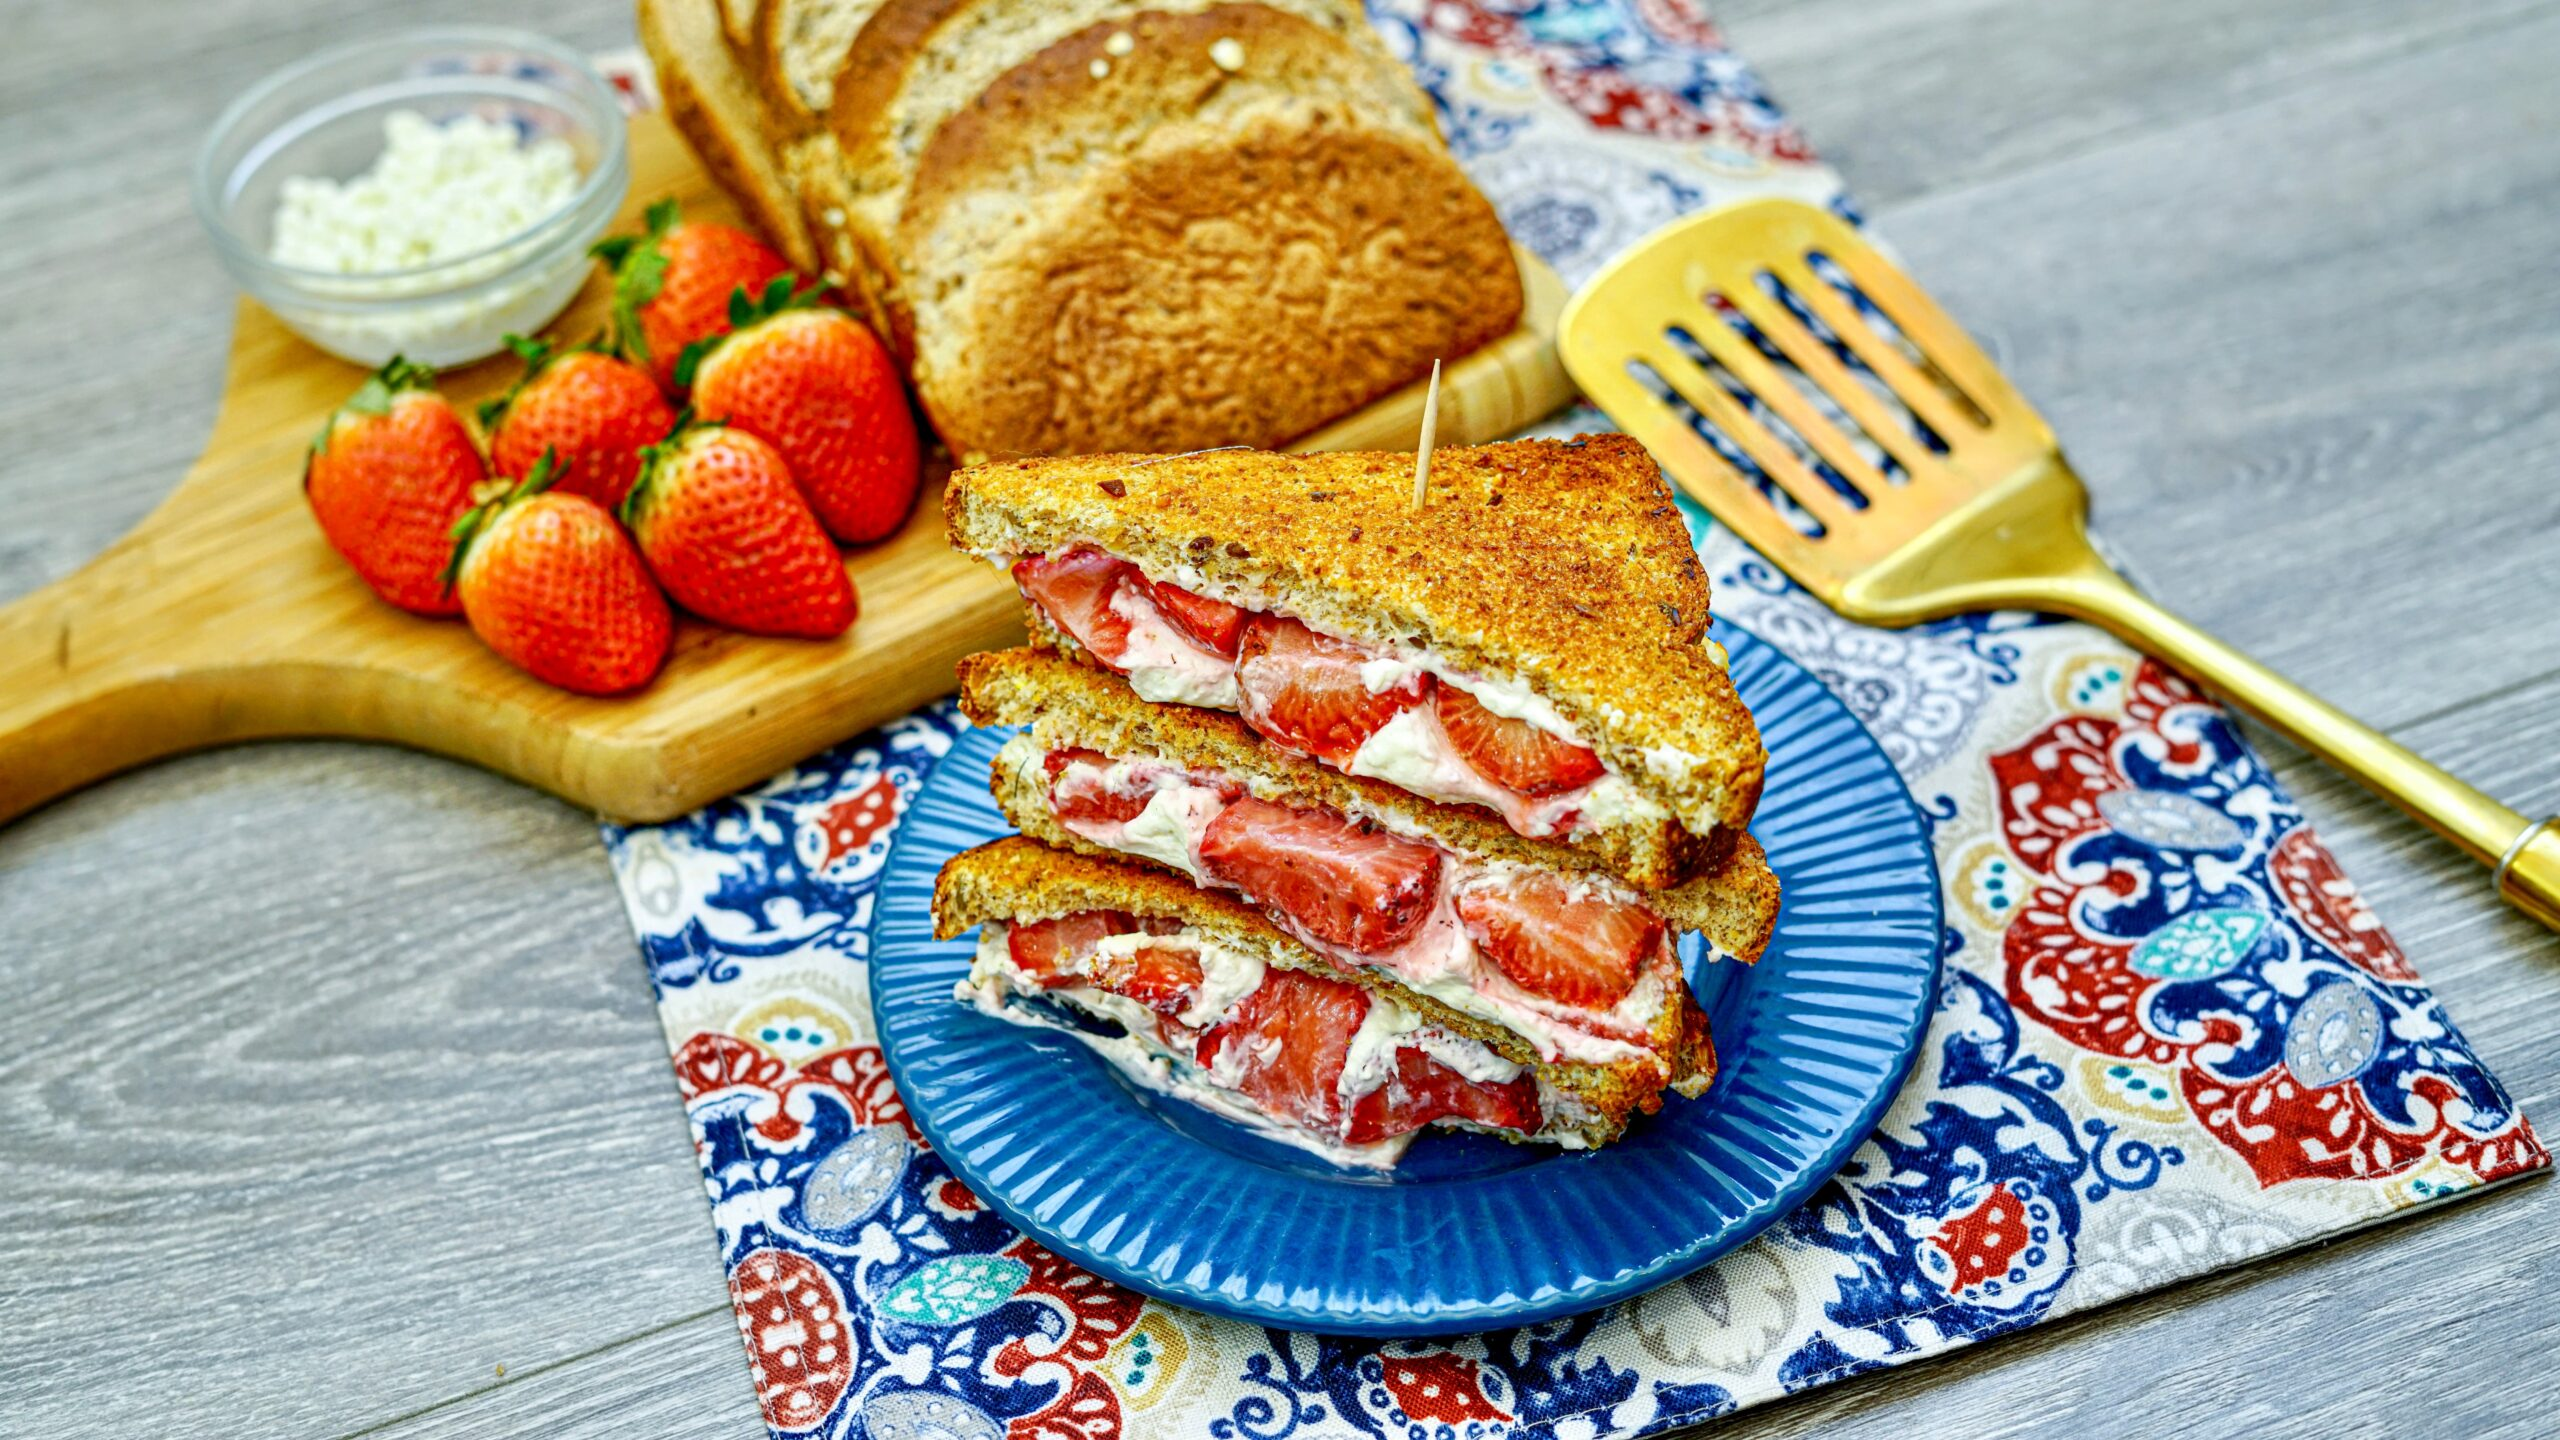 Grilled Cheese With Goat Cheese and Strawberries